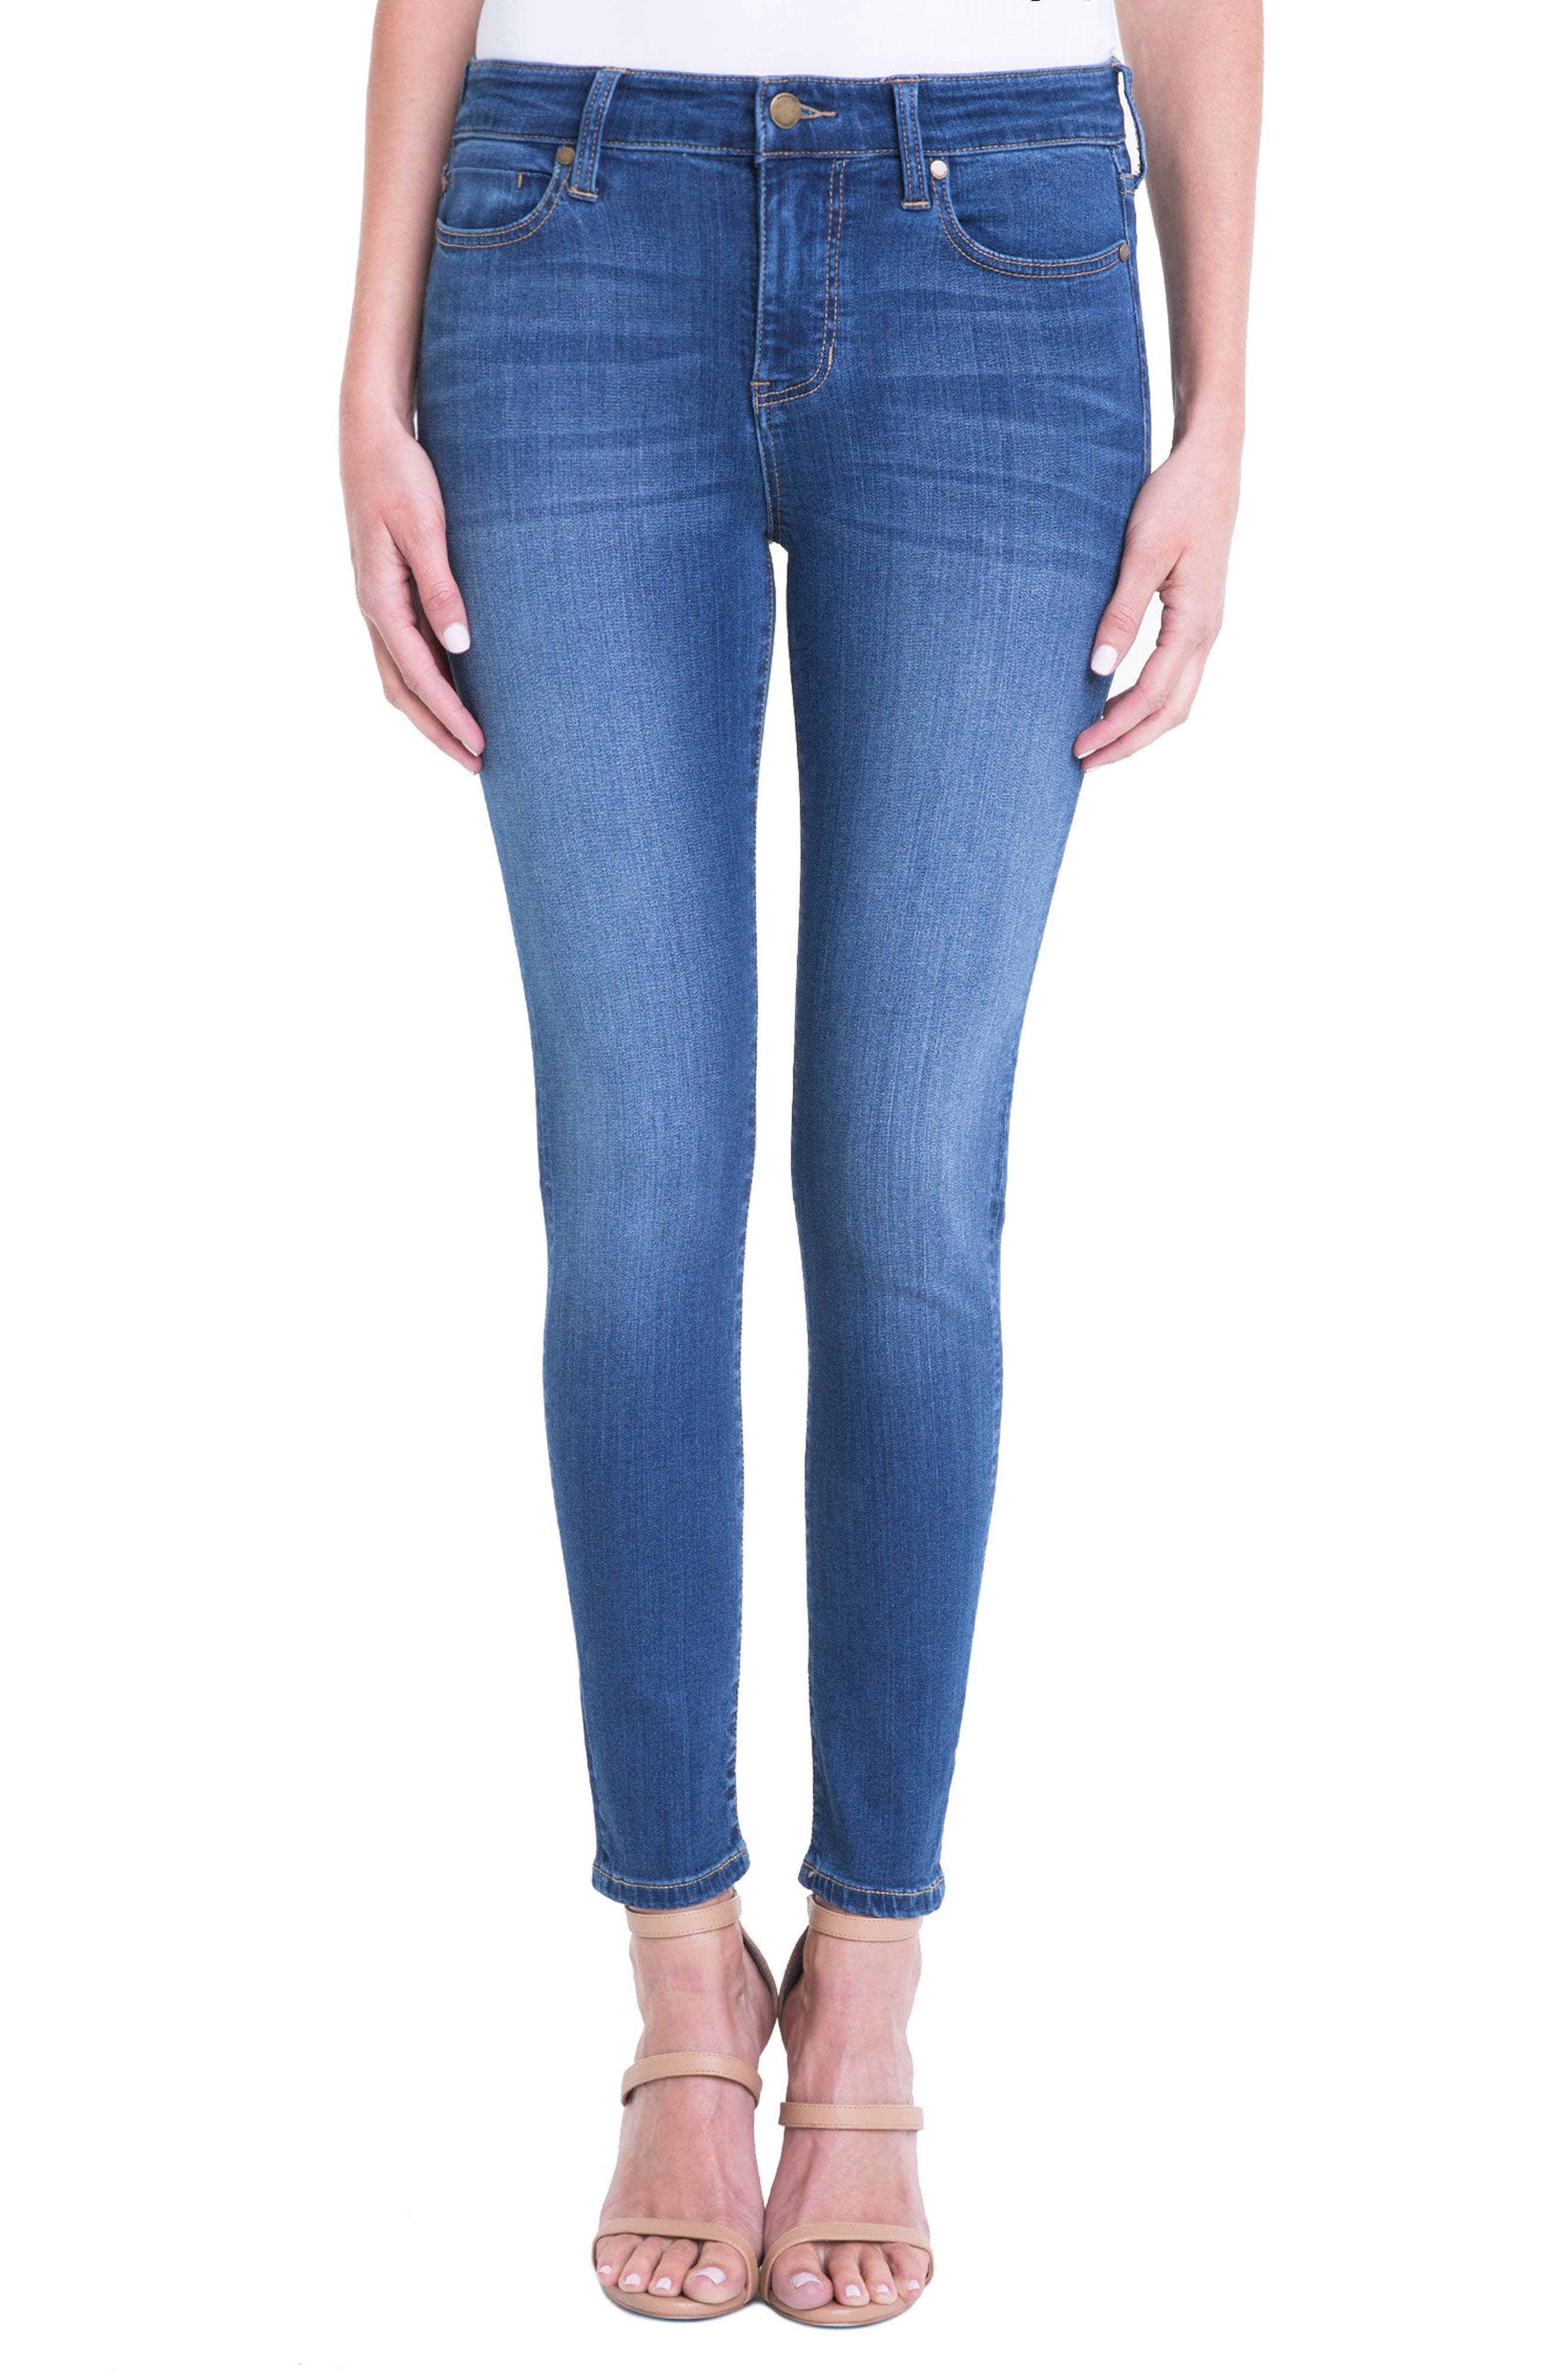 Main Image - Liverpool Jeans Company High Rise Stretch Ankle Skinny Jeans (Albury Wash)